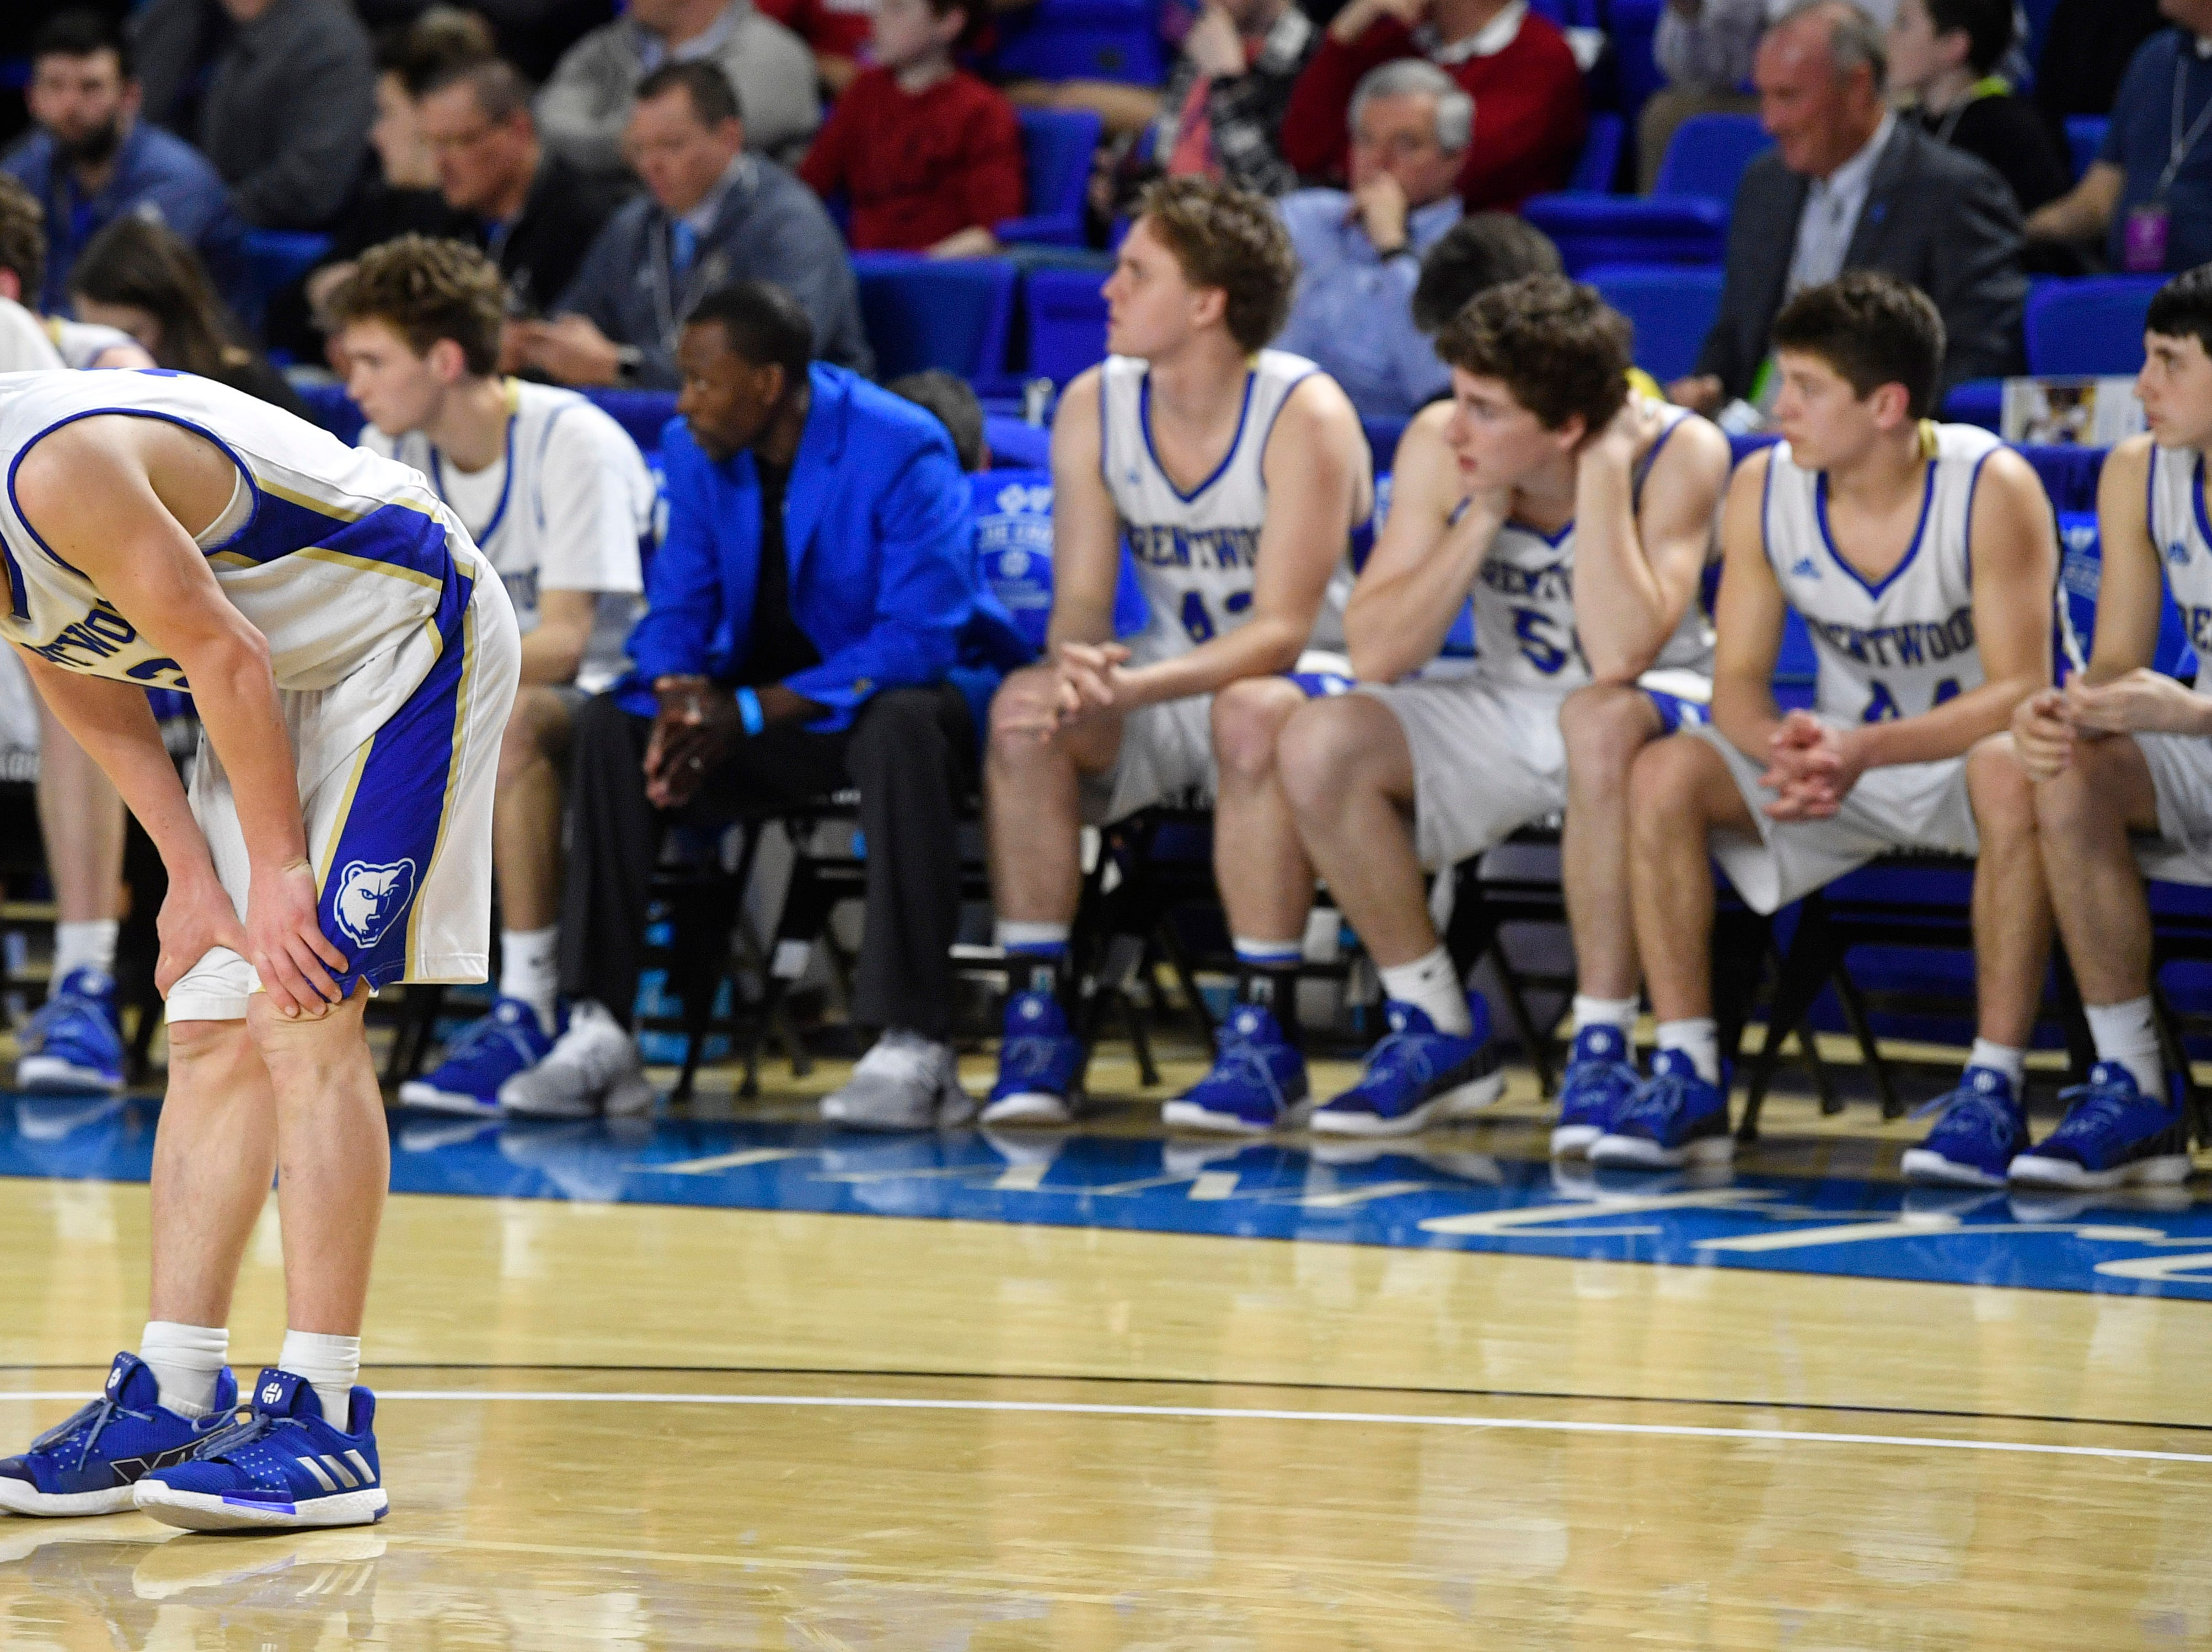 Brentwood Preston Moore (12) takes a moment to compose himself during the last seconds of the game as as Brentwood loses to Memphis East 46-42 in the TSSAA Class AAA semifinal  Friday, March 15, 2019, in Murfreesboro, Tenn.